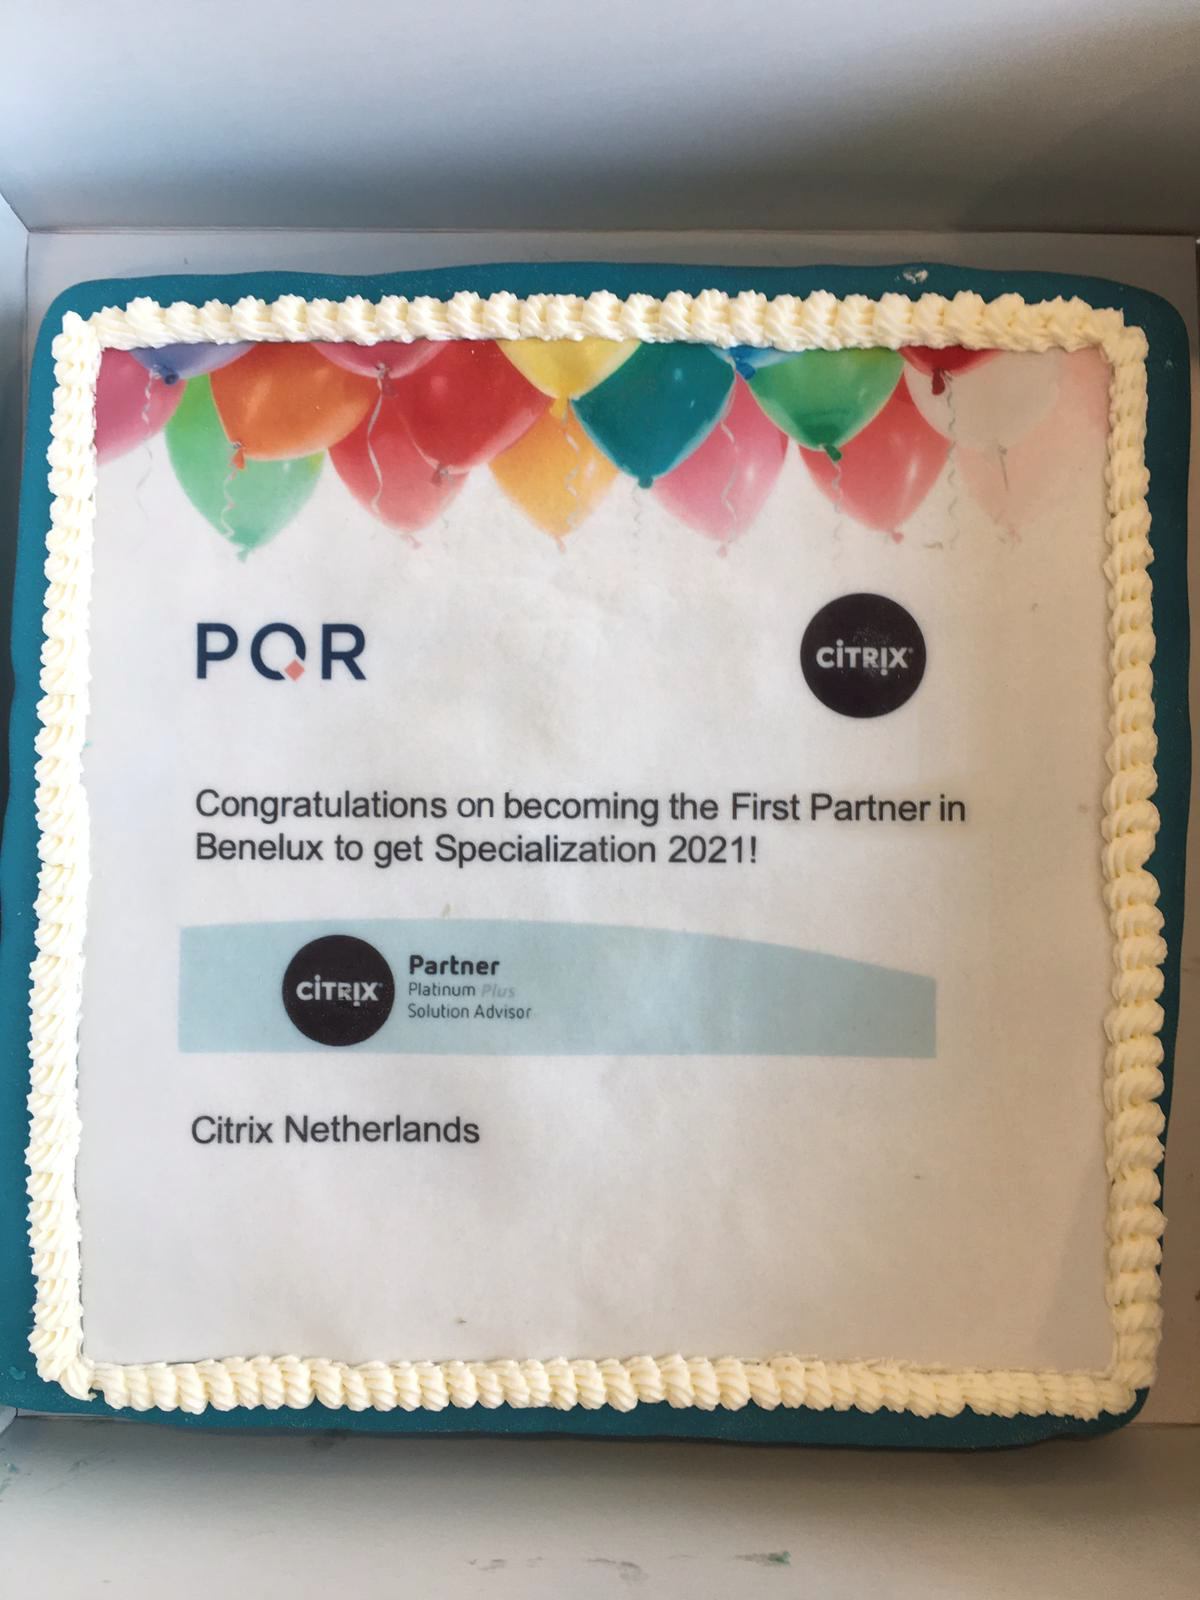 PQR is Citrix Platinum Plus Partner